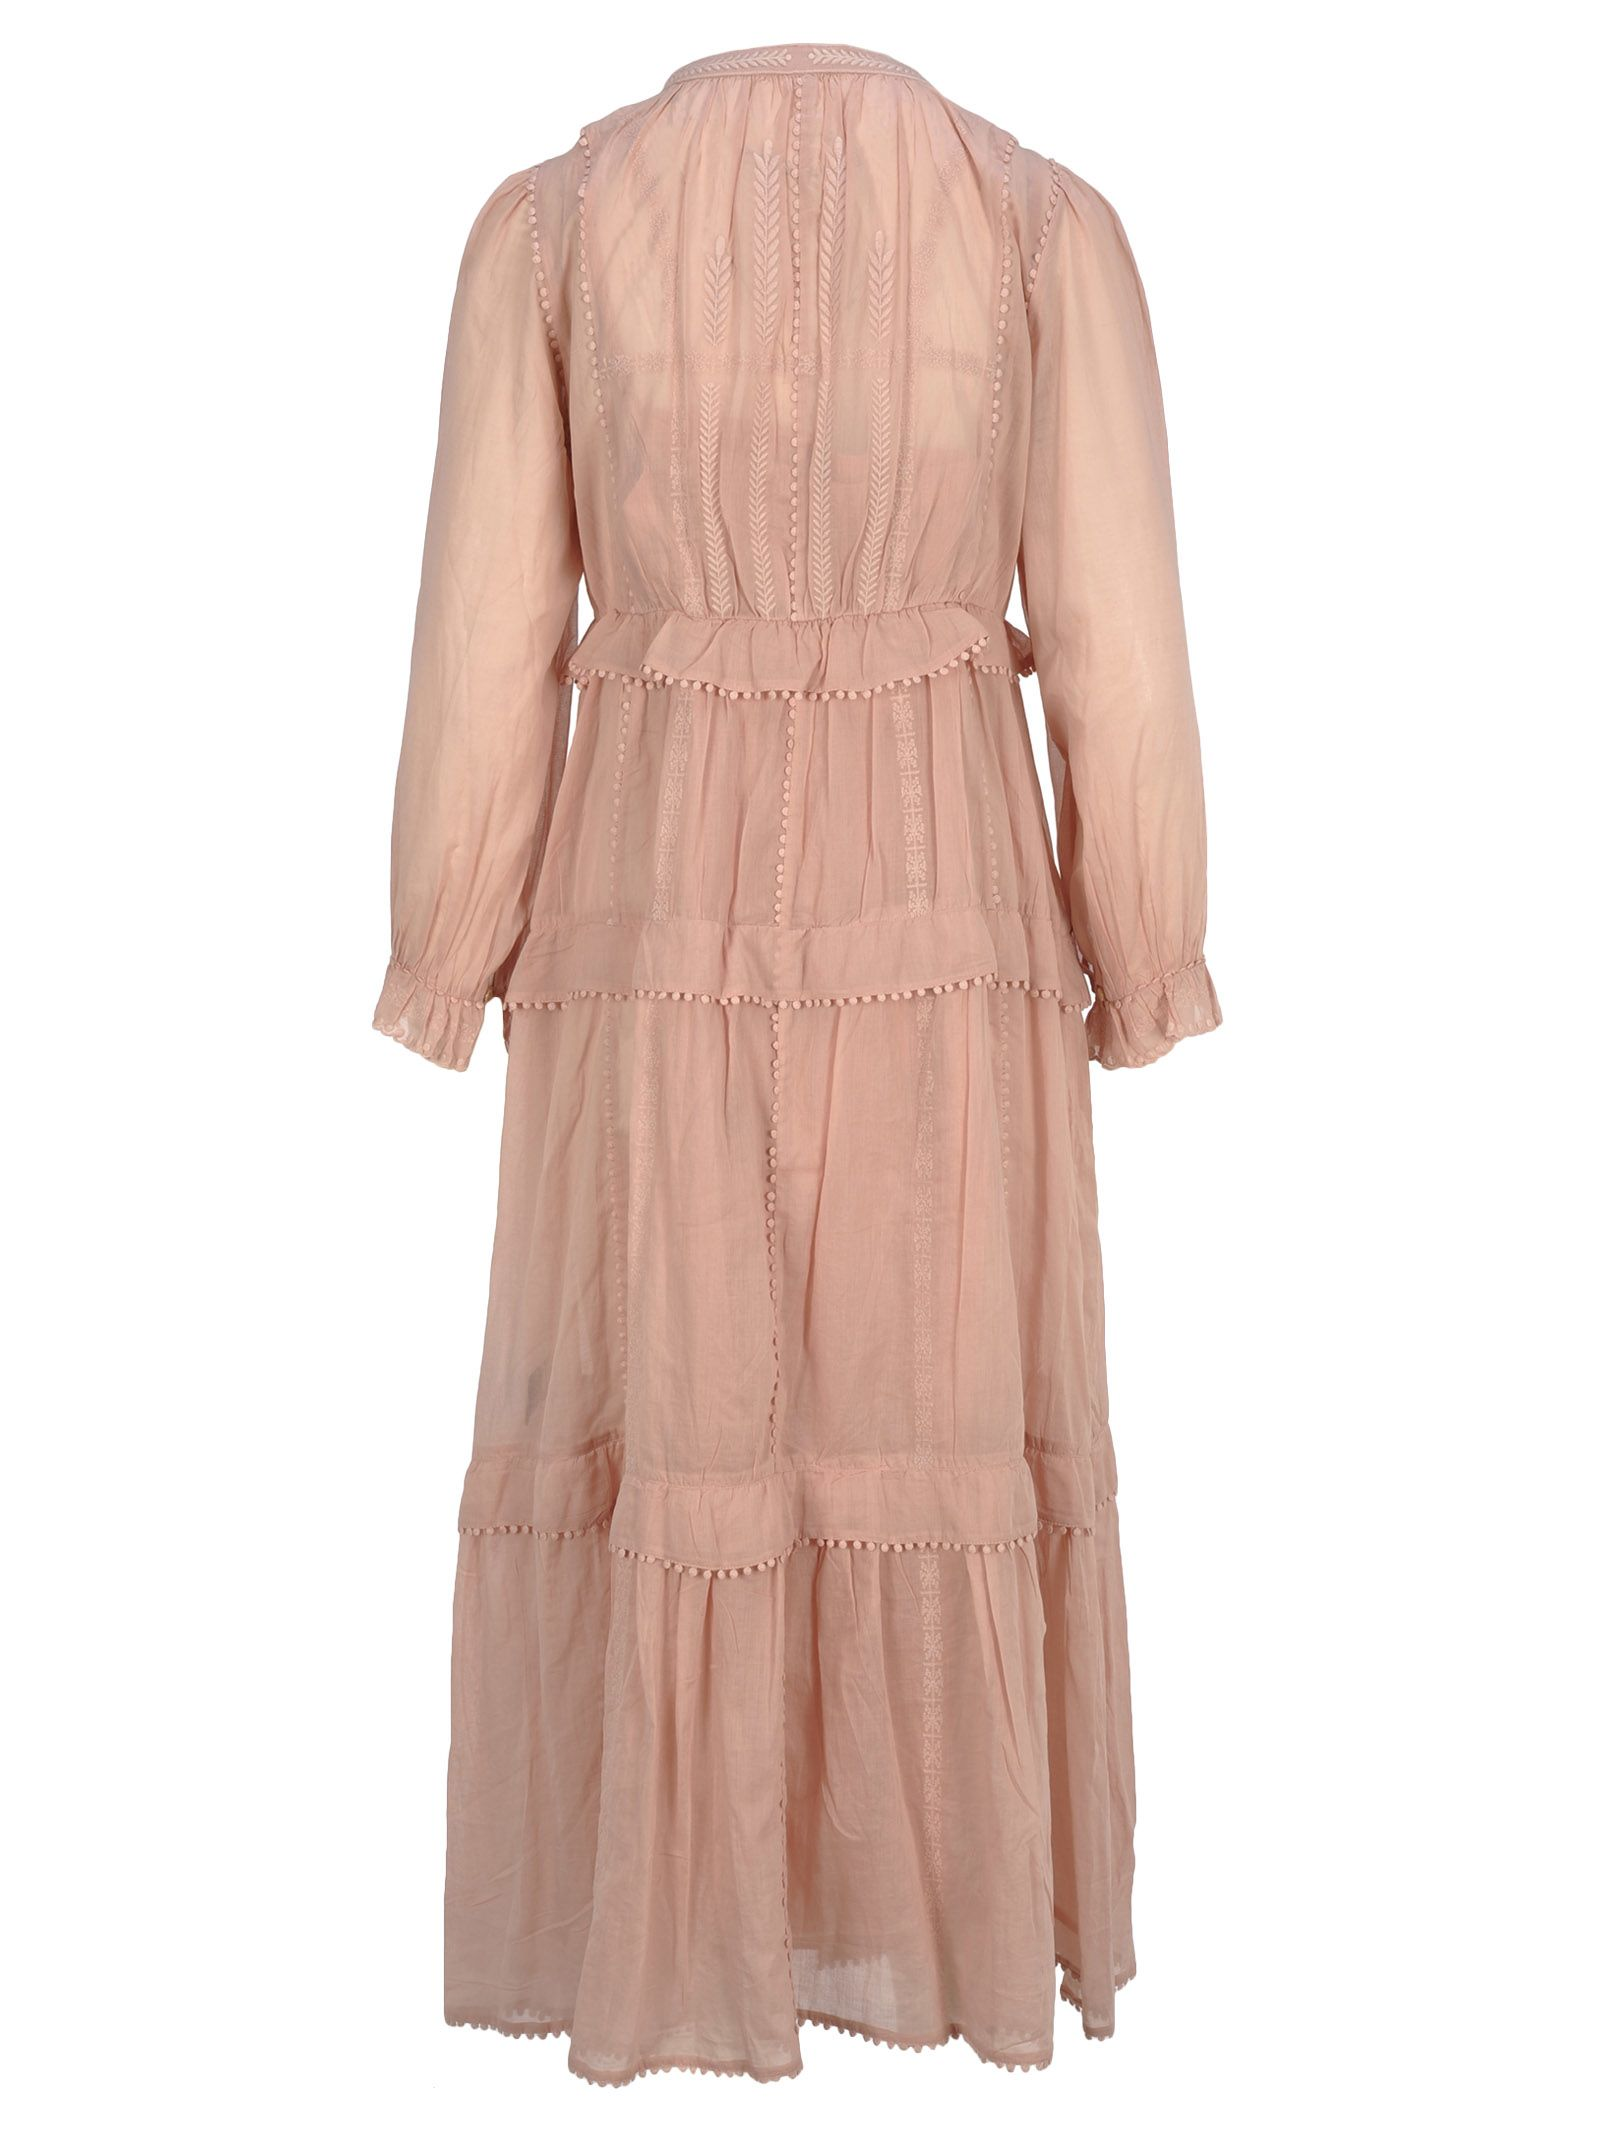 853e122aad753 Isabel Marant Étoile Im Etoile Aboni Long Dress - Pink - 10816144 ...